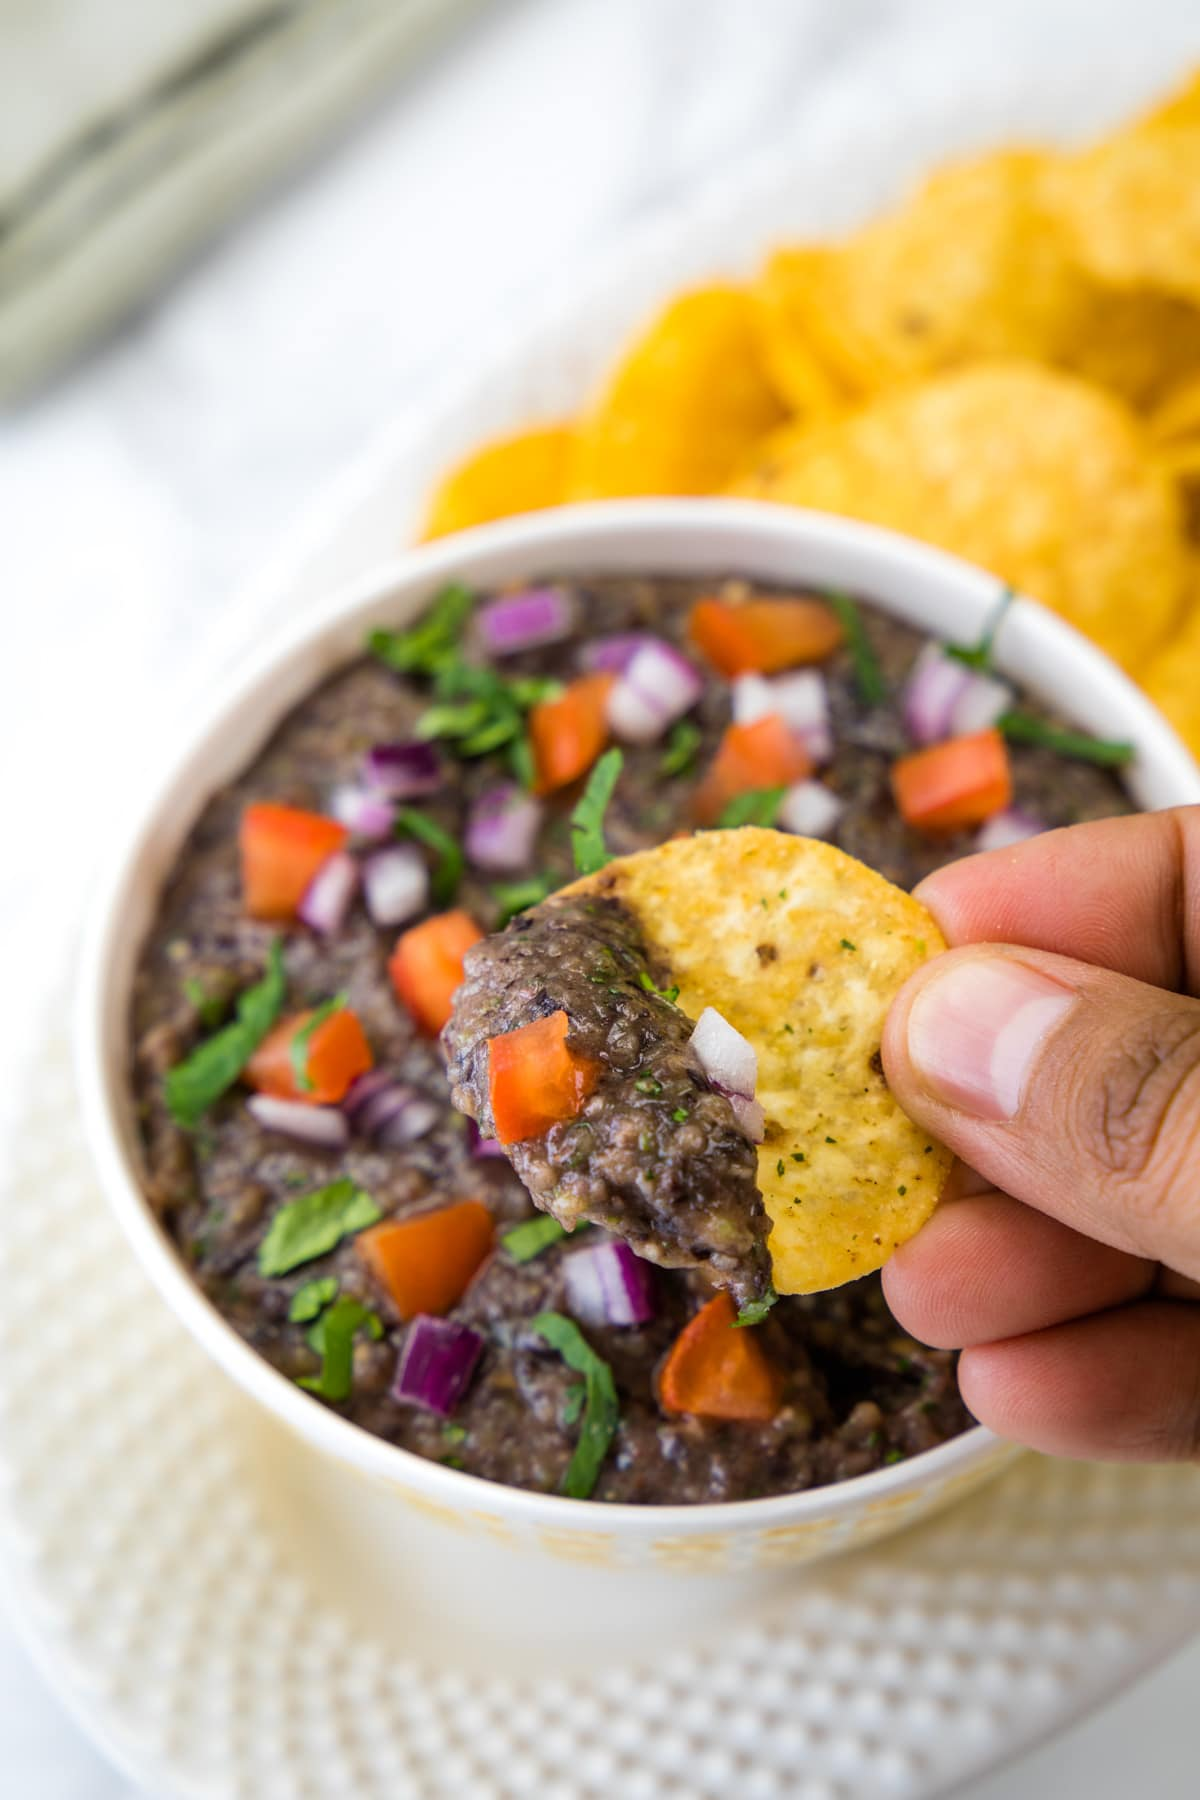 A scoop of black bean dip with tortilla chip.